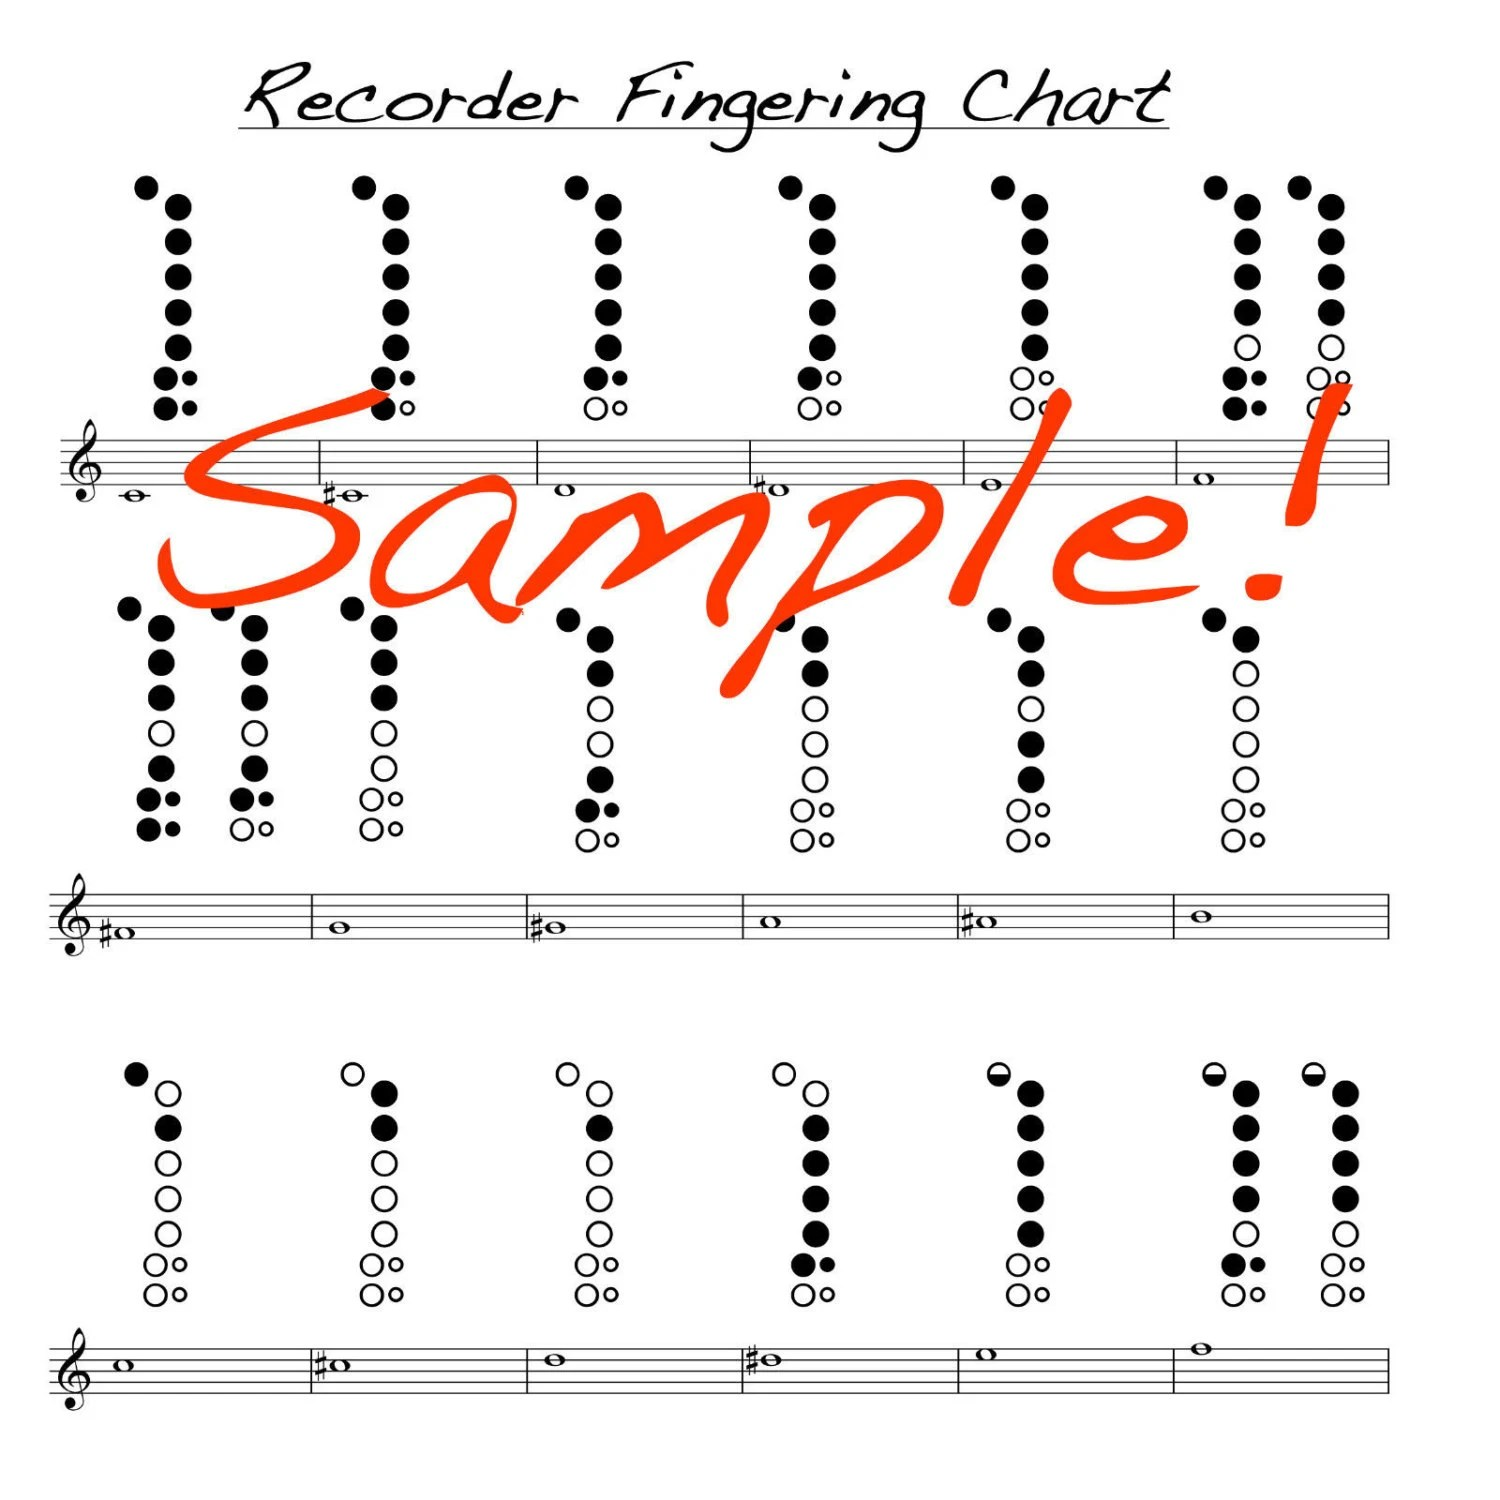 Mini Recorder Fingering Chart Double Sided Laminated chart Etsy